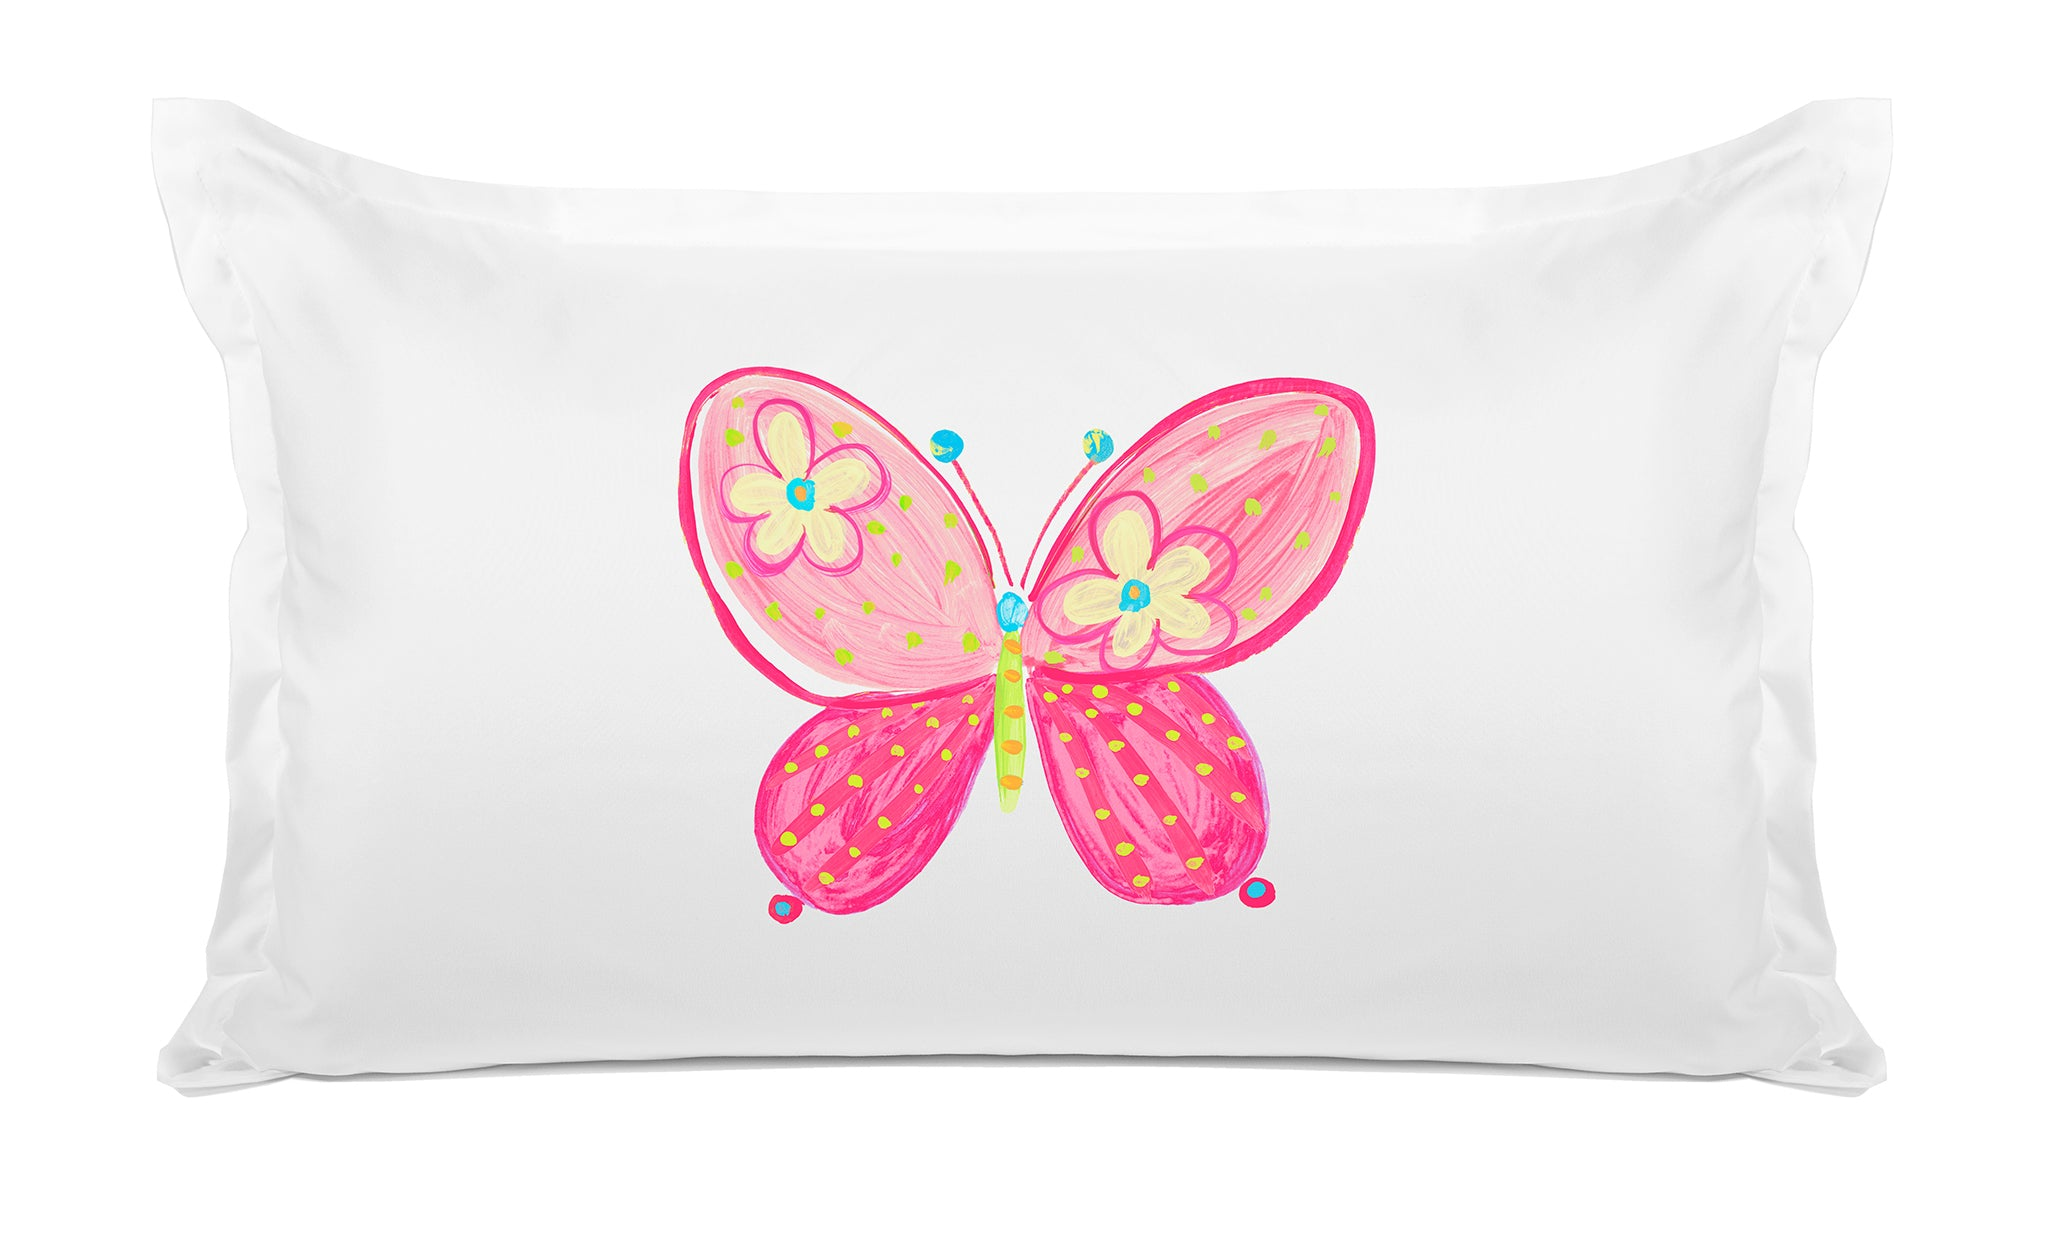 Madam Butterfly - Personalized Kids Pillowcase Collection-Di Lewis